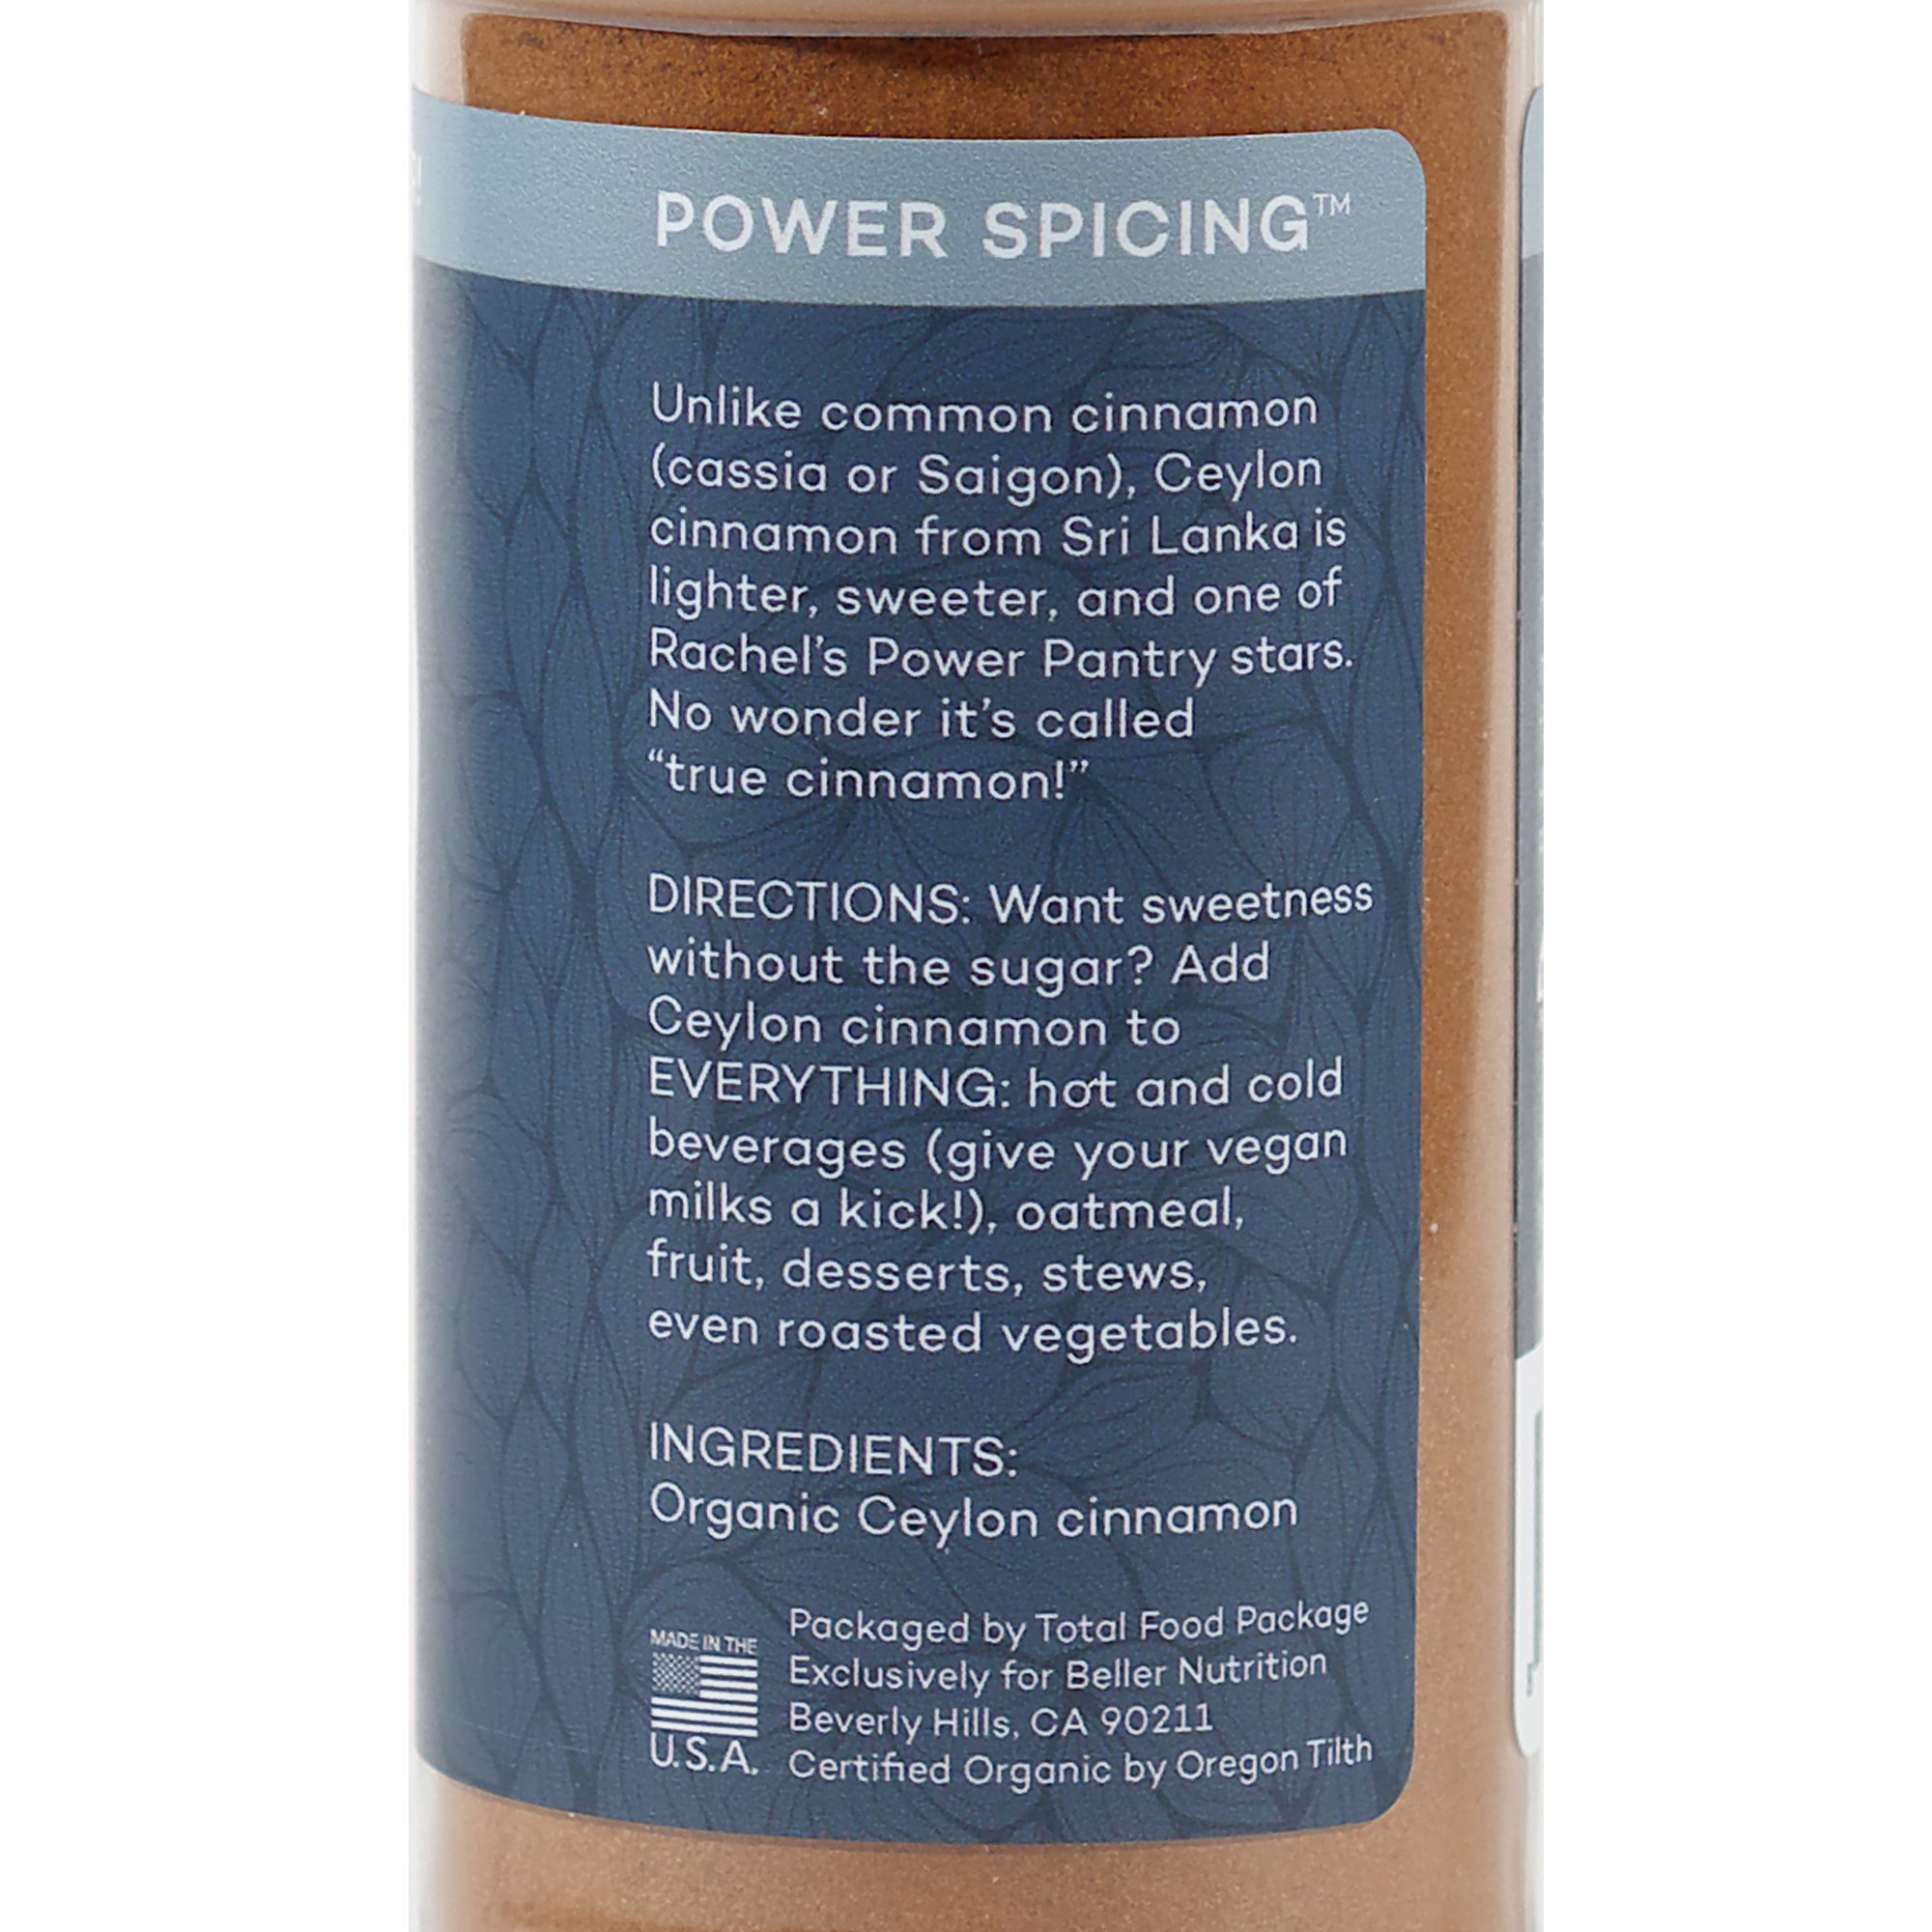 Rachel Beller's Power Pantry Ceylon Cinnamon - Organic Ceylon cinnamon spice, 3.1 ounce by Rachel Beller's Power Pantry (Image #5)